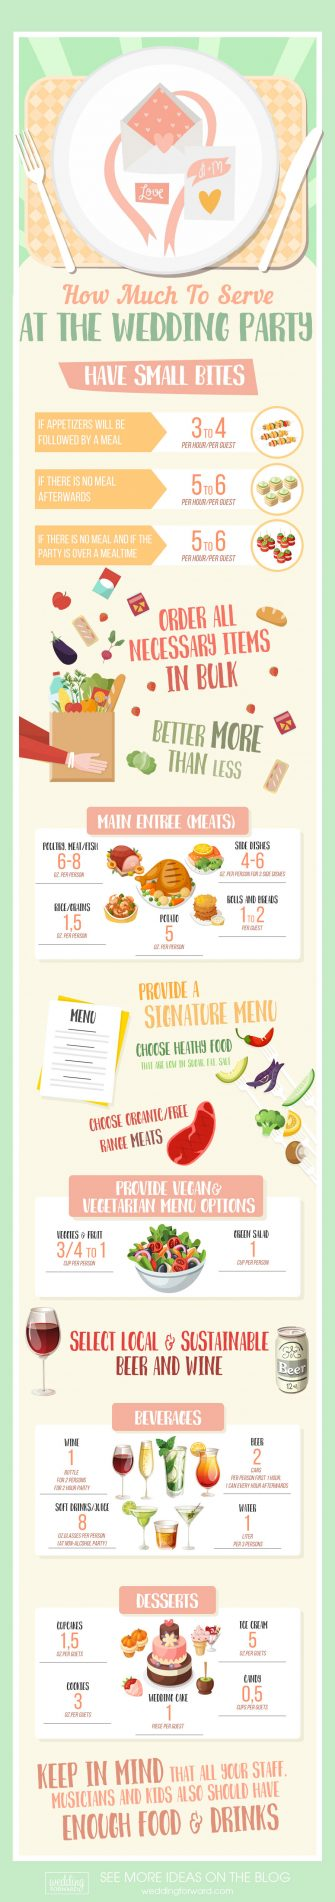 How much food to I need to order for my wedding - Wedding Planning Timeline-Checklist